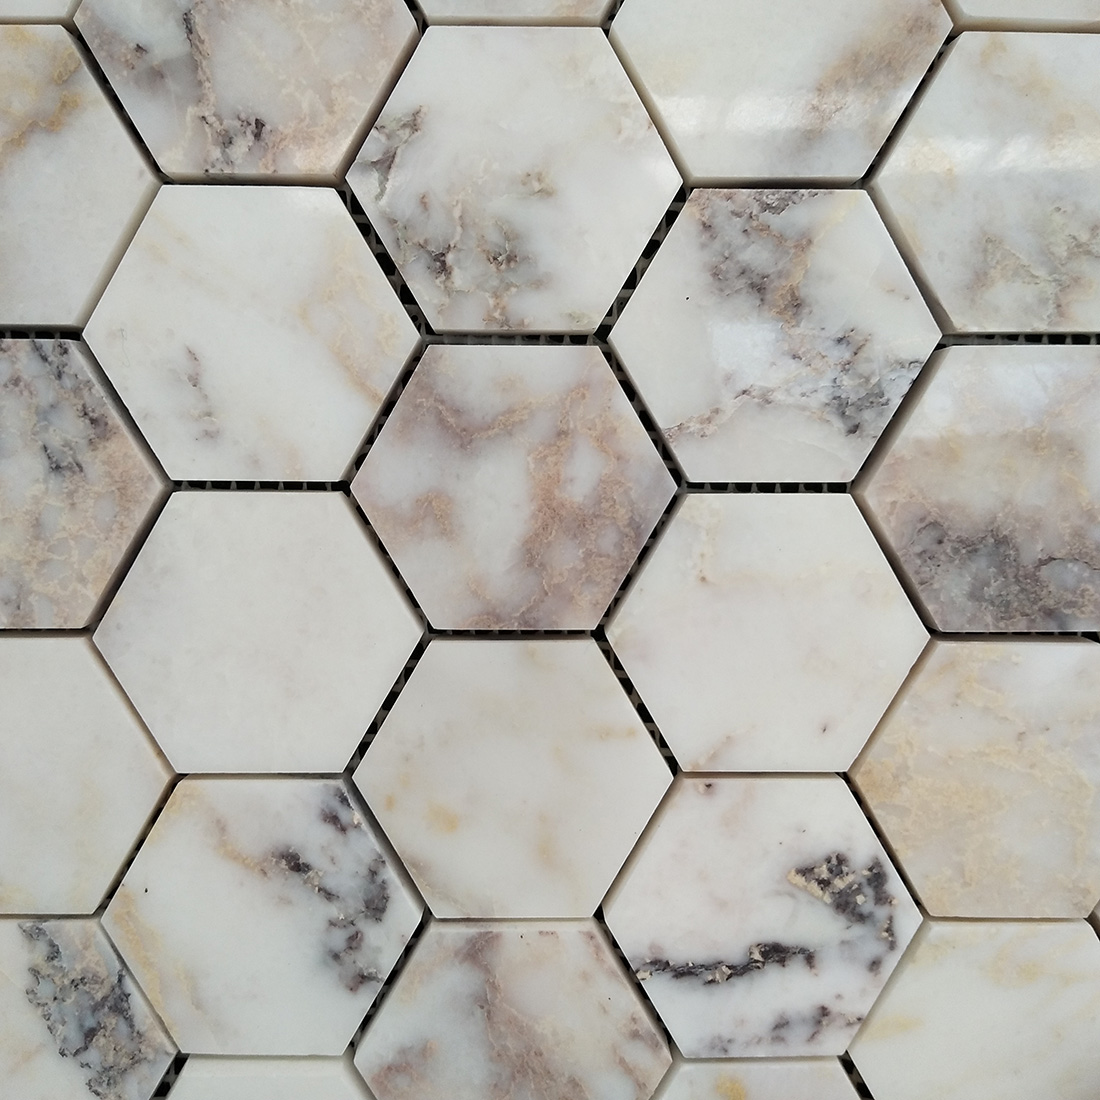 Hexagon natural stone mosaic tiles